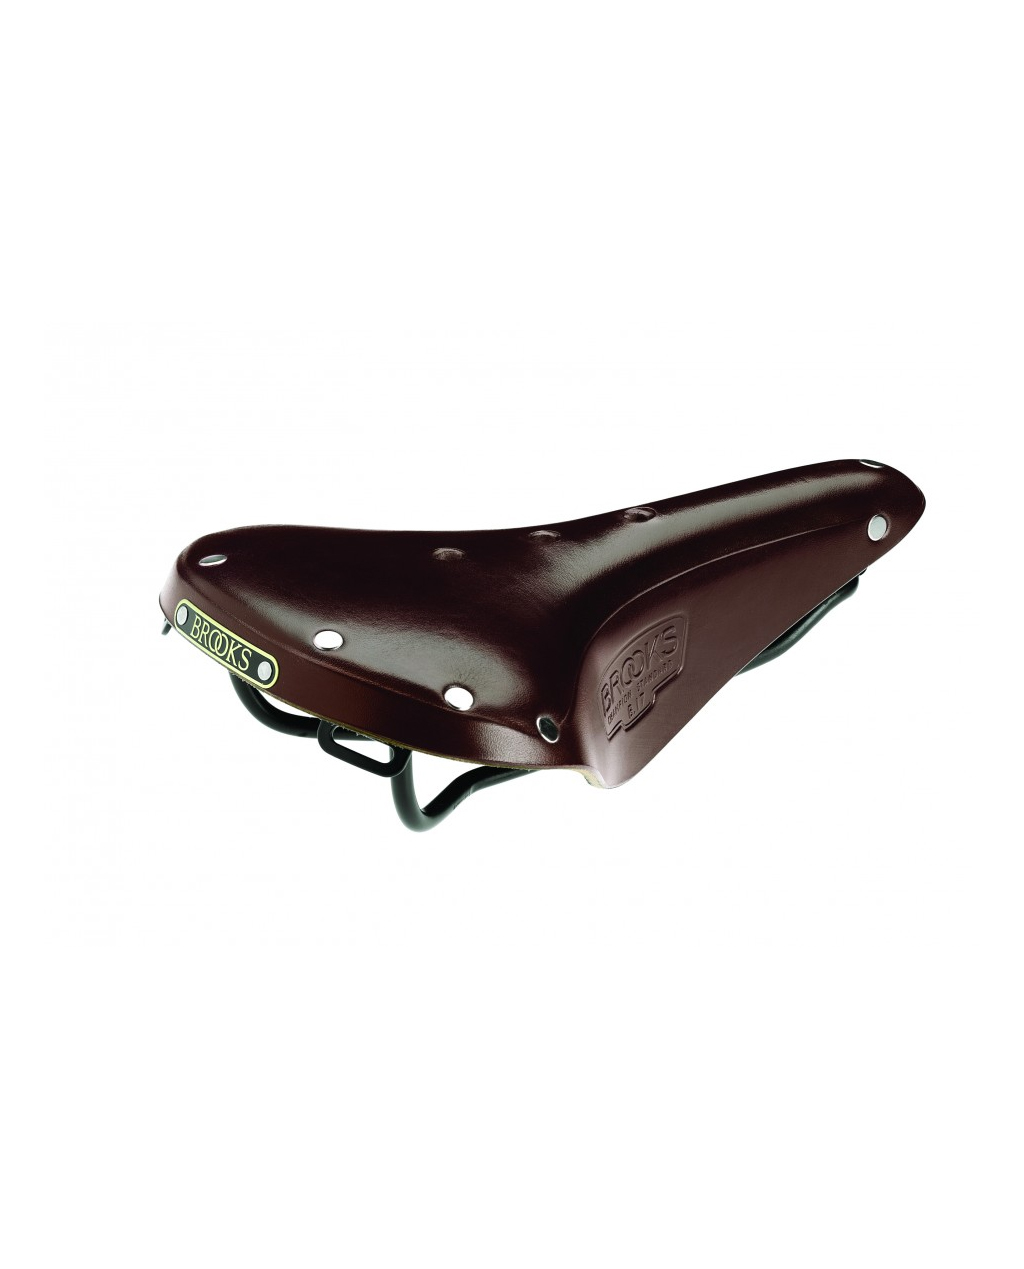 Brooks B17S Standard - Brown